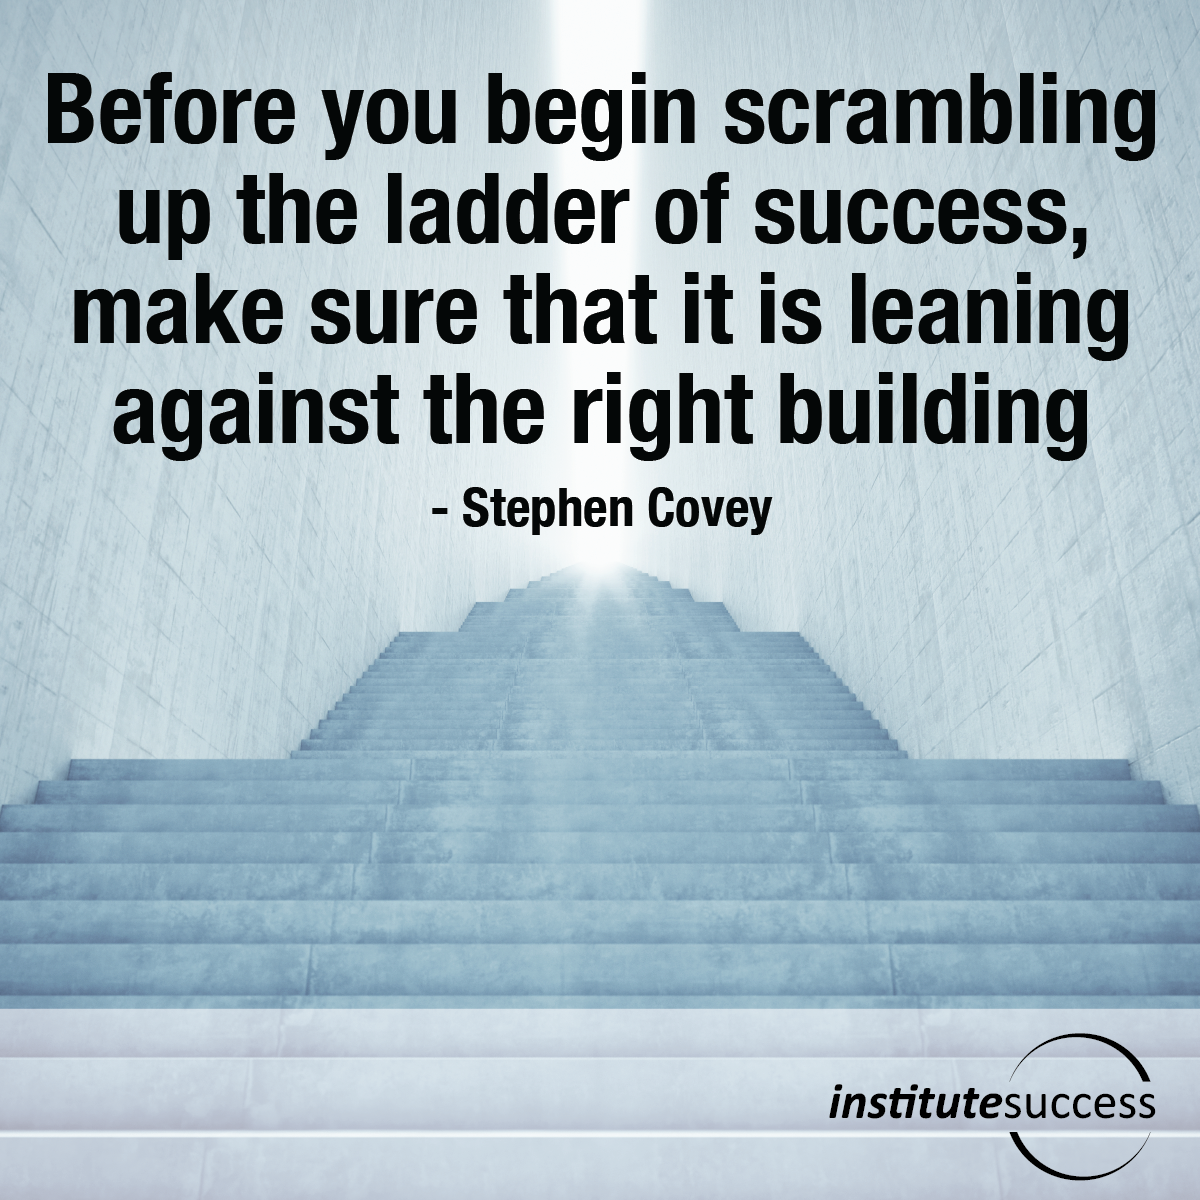 Before you begin scrambling up the ladder of success, make sure that it is leaning against the right building – Stephen Covey